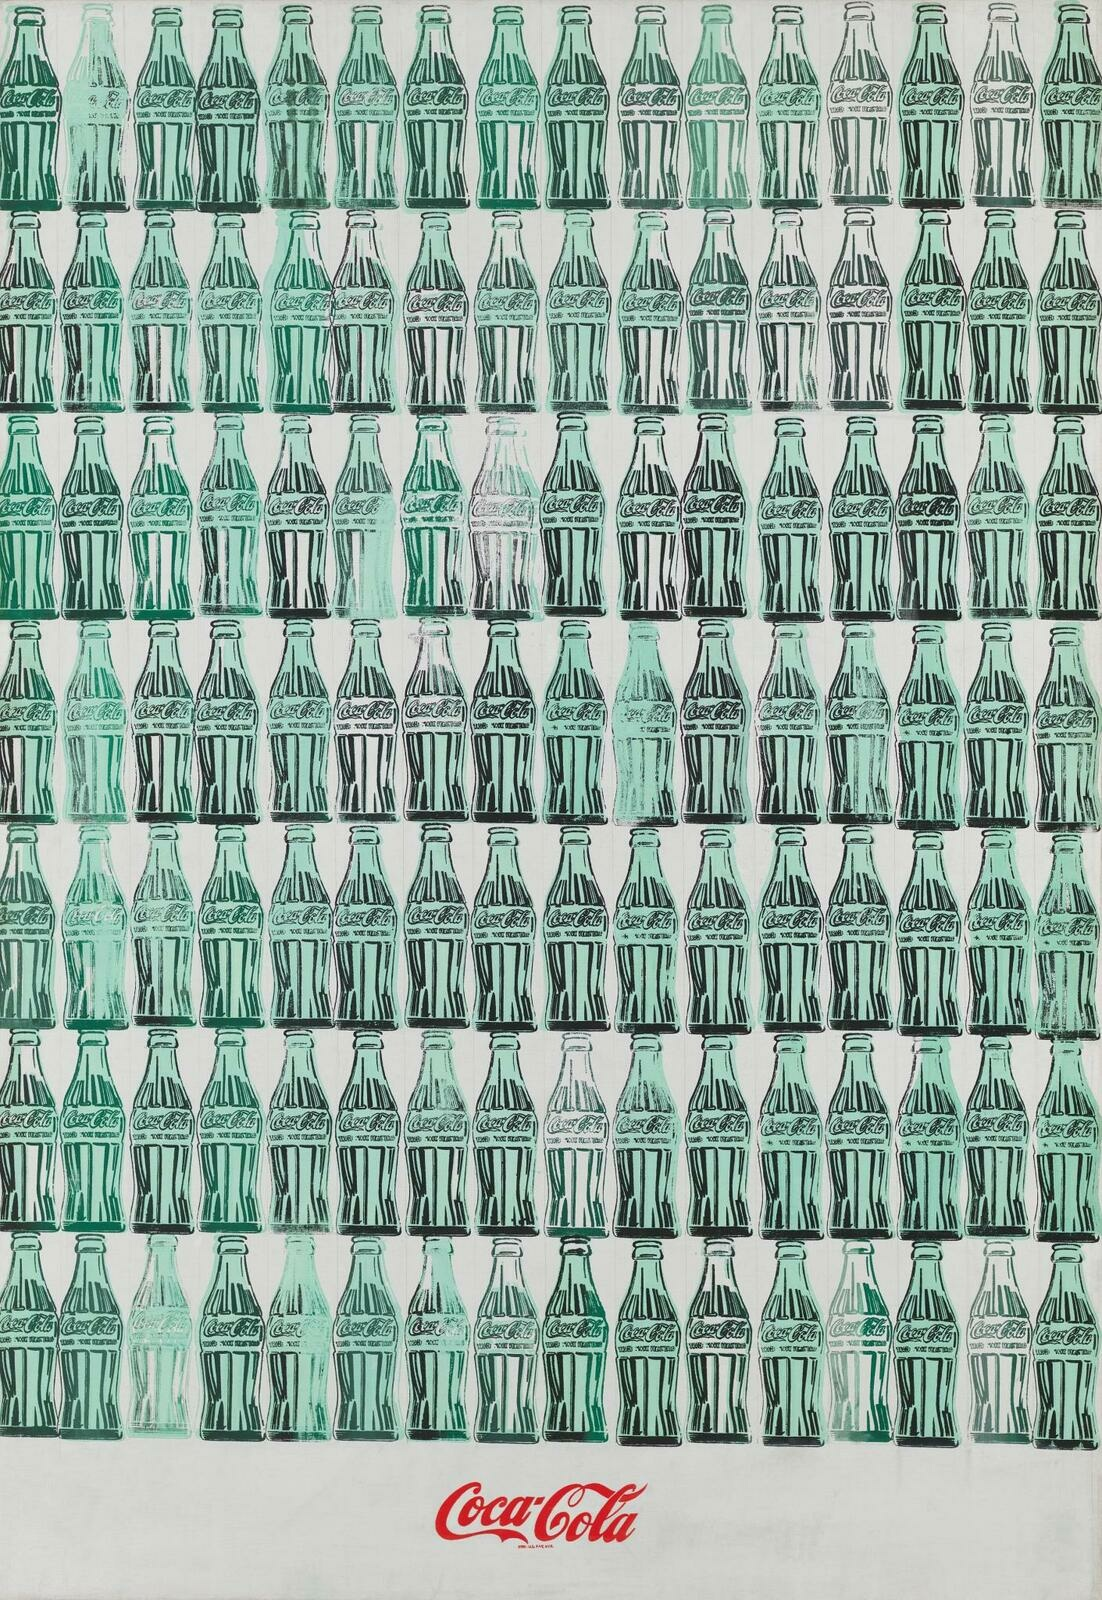 Grid of neatly packed seafoam colored Coca-Cola bottles. A bright red logo of the Coca-Cola brand is placed on the center plane, underneath the grid